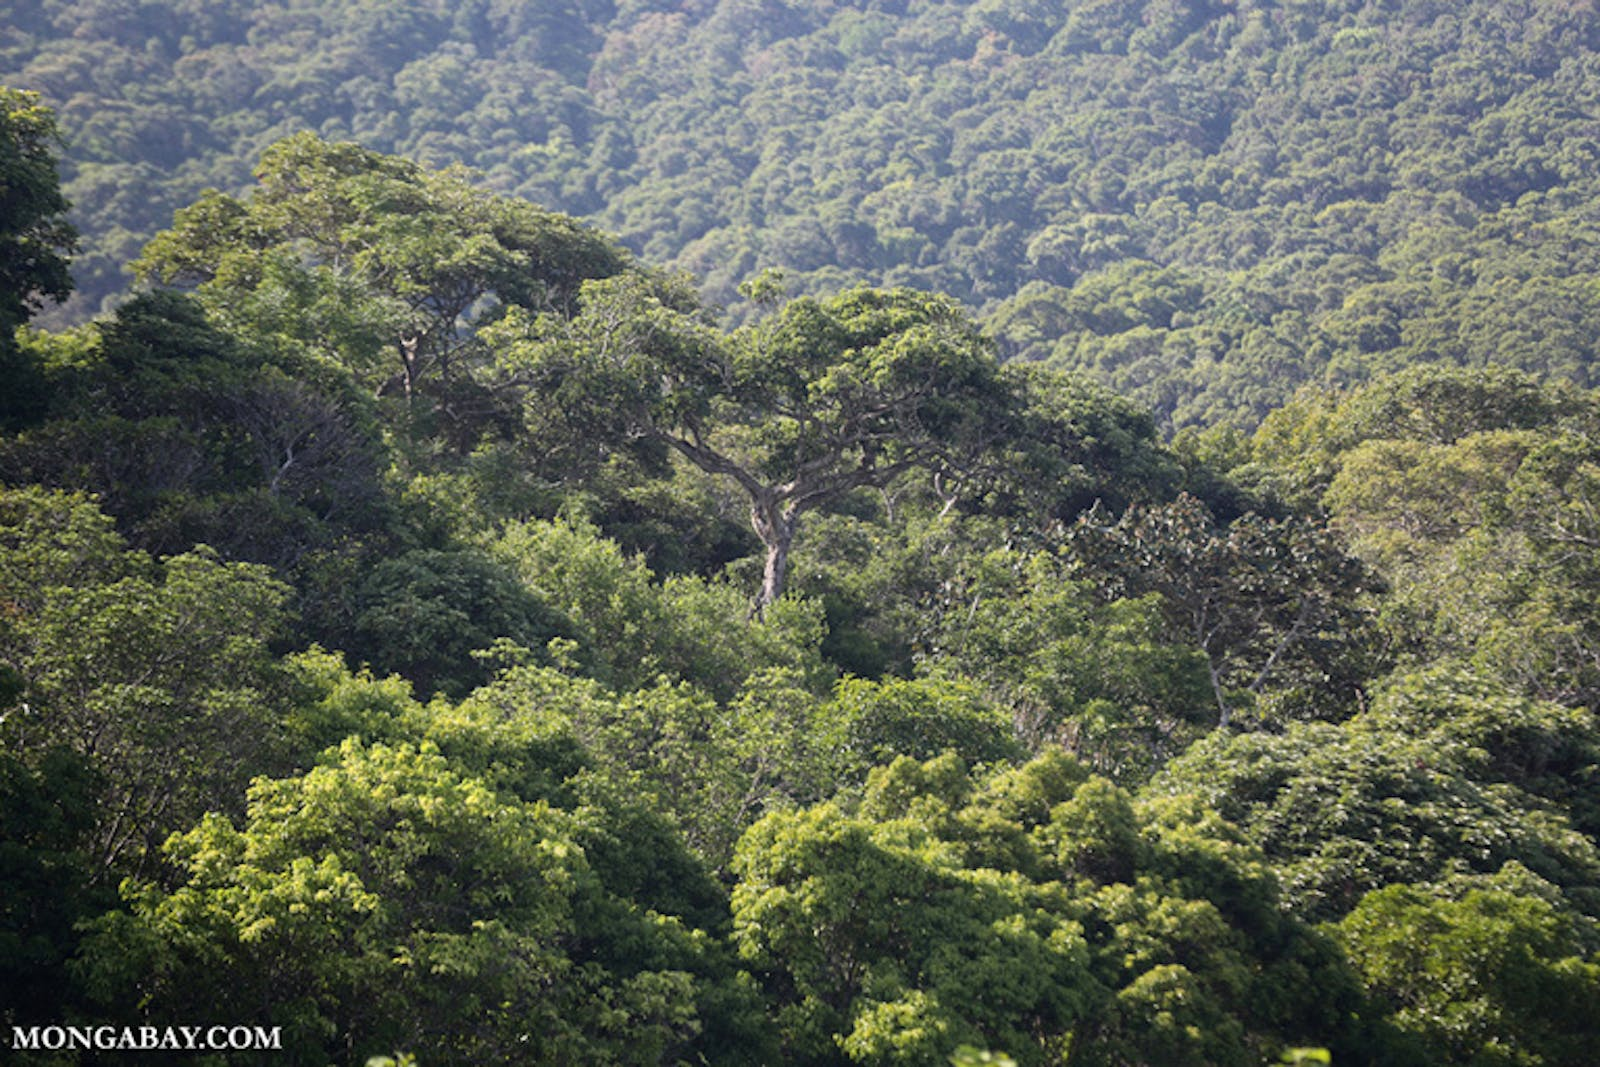 Southern Vietnam Lowland Dry Forests